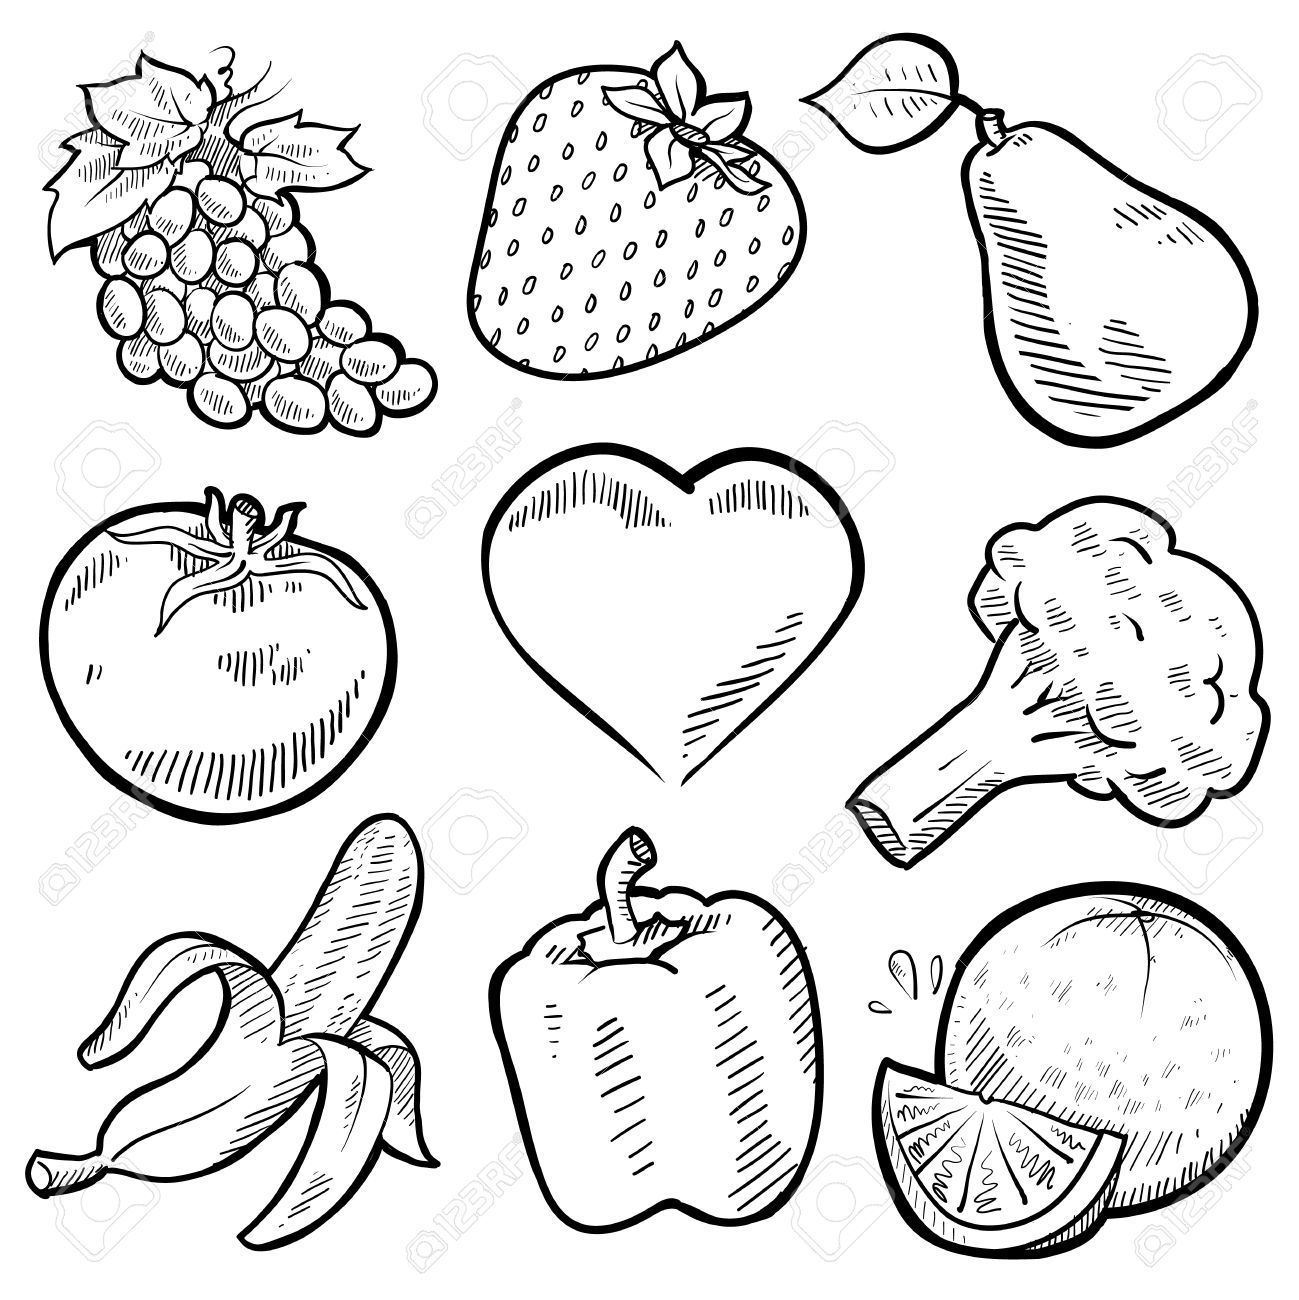 vegetables drawing for coloring coloring book pdf download drawing for coloring vegetables